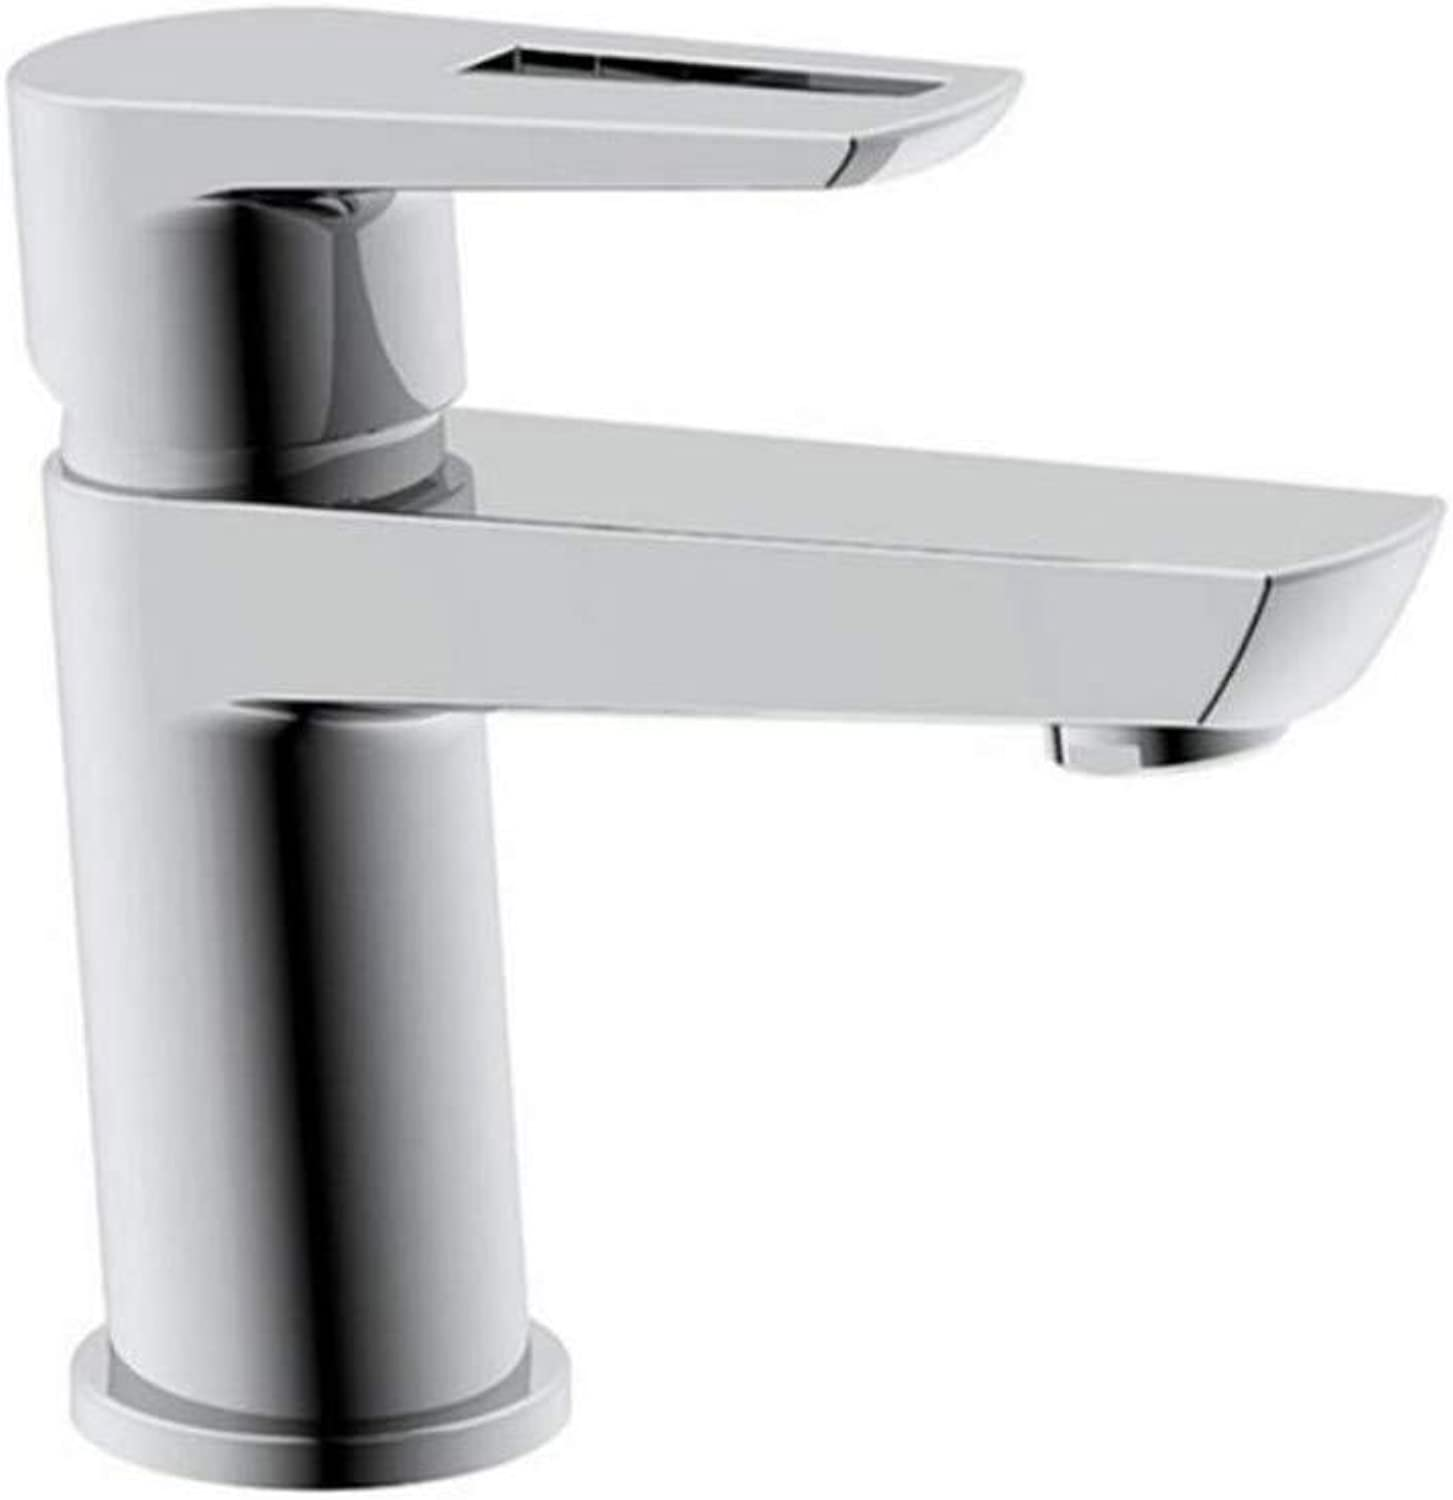 Faucet Lead-Free Square Innovation Copper Bathroom Stainless Steel Basin Faucet